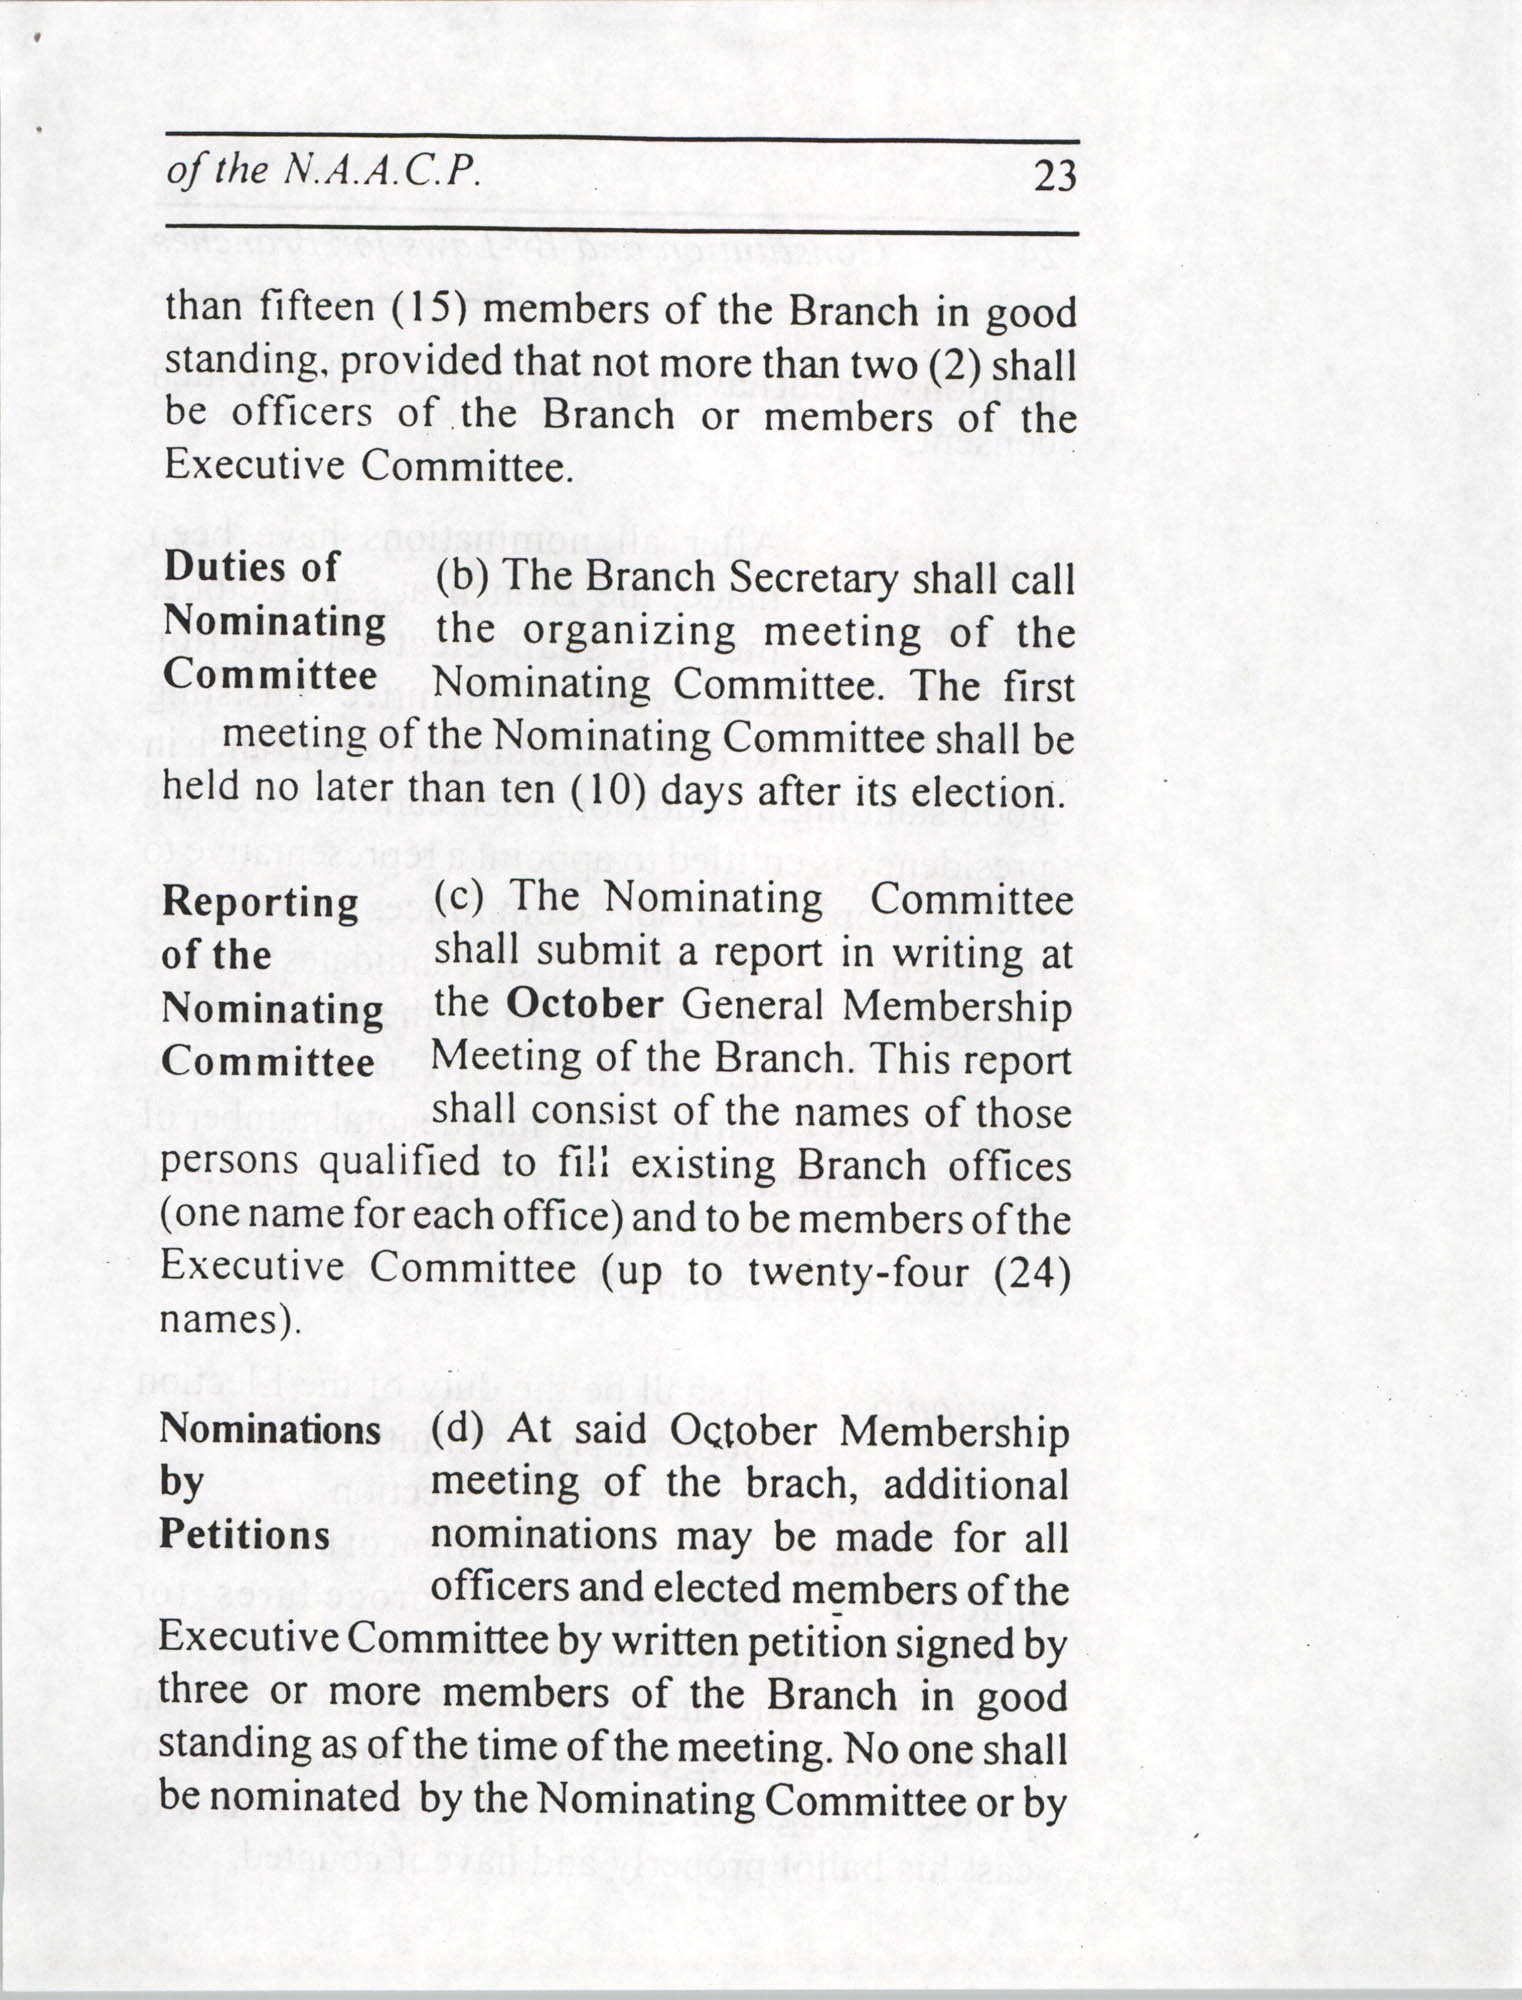 Constitution and By-Laws for Branches of the NAACP, July 1994, Page 23